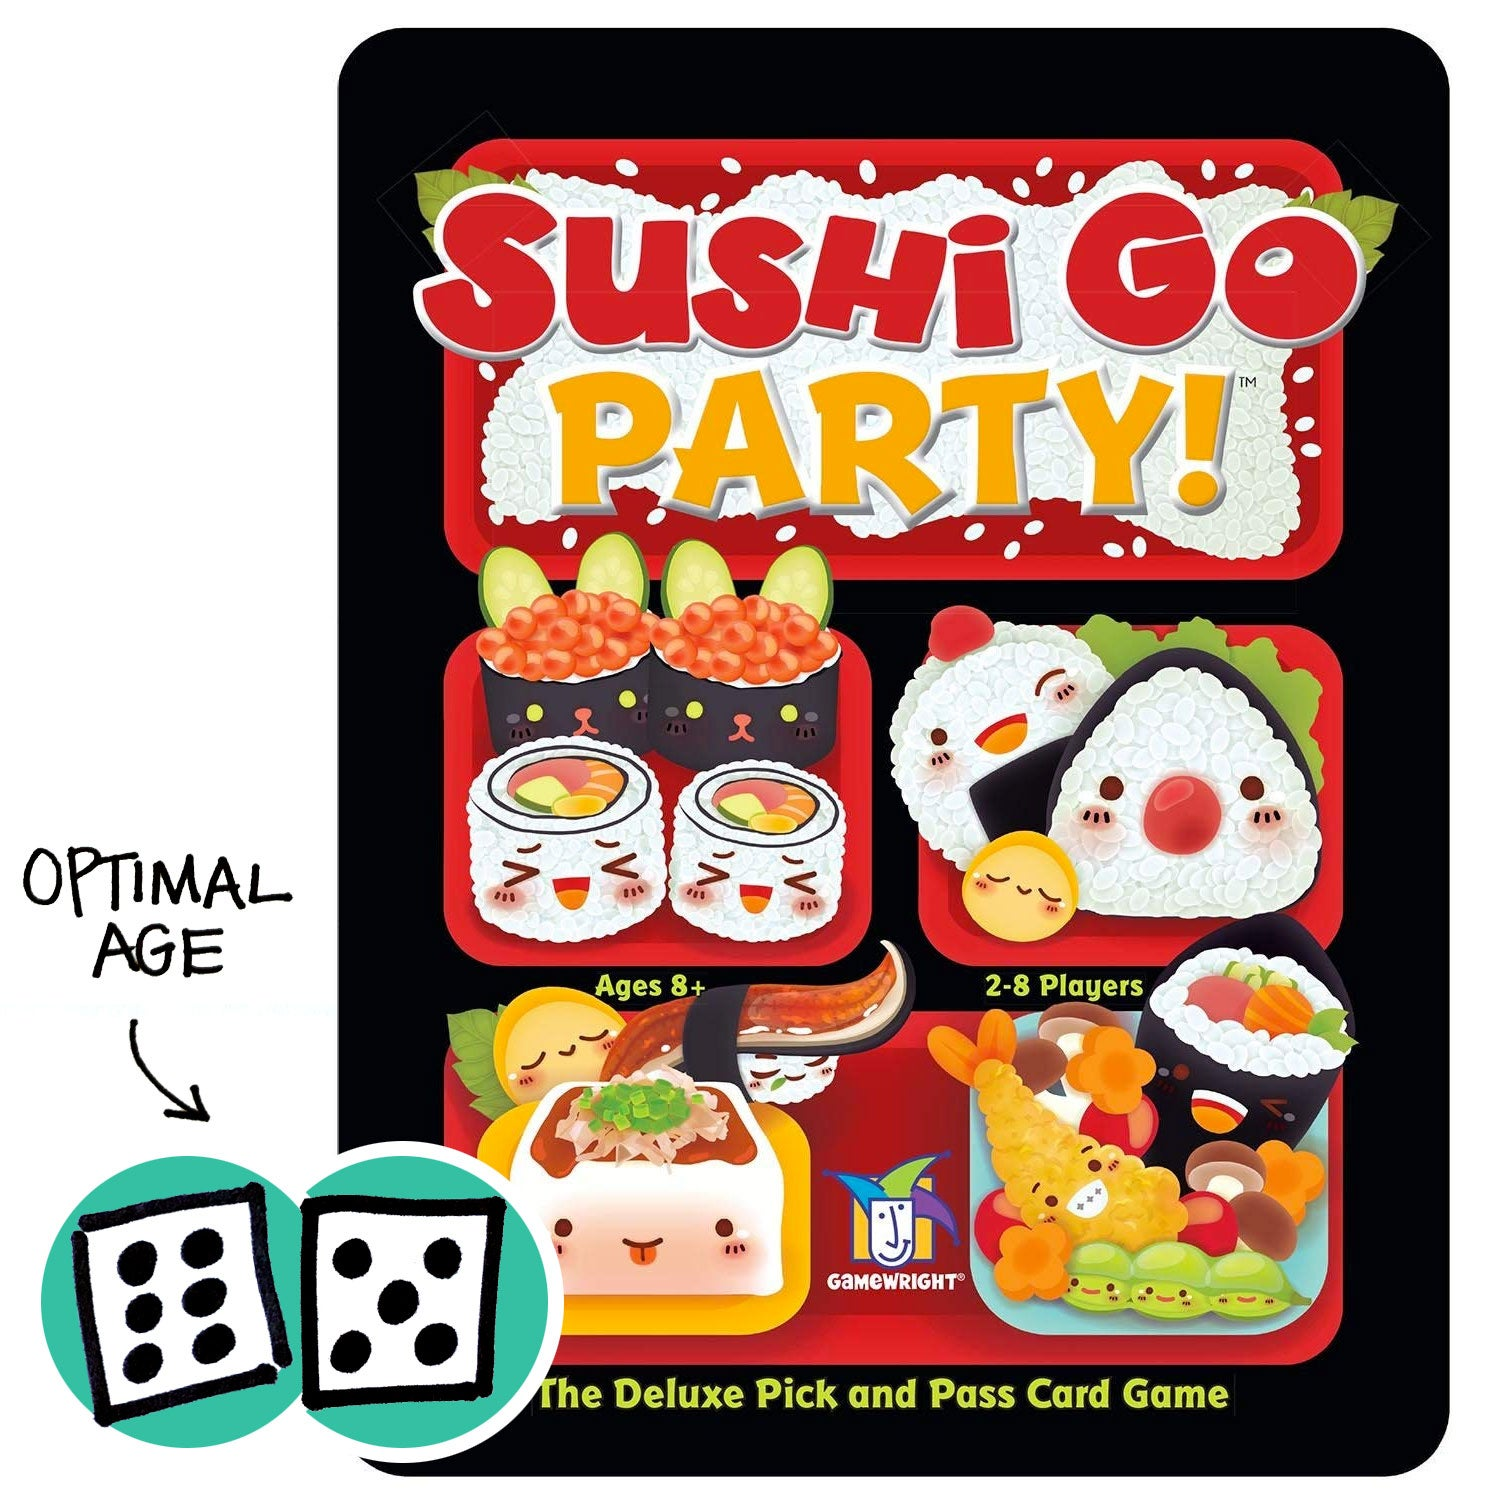 Sushi Go Party! with dice showing optimal age